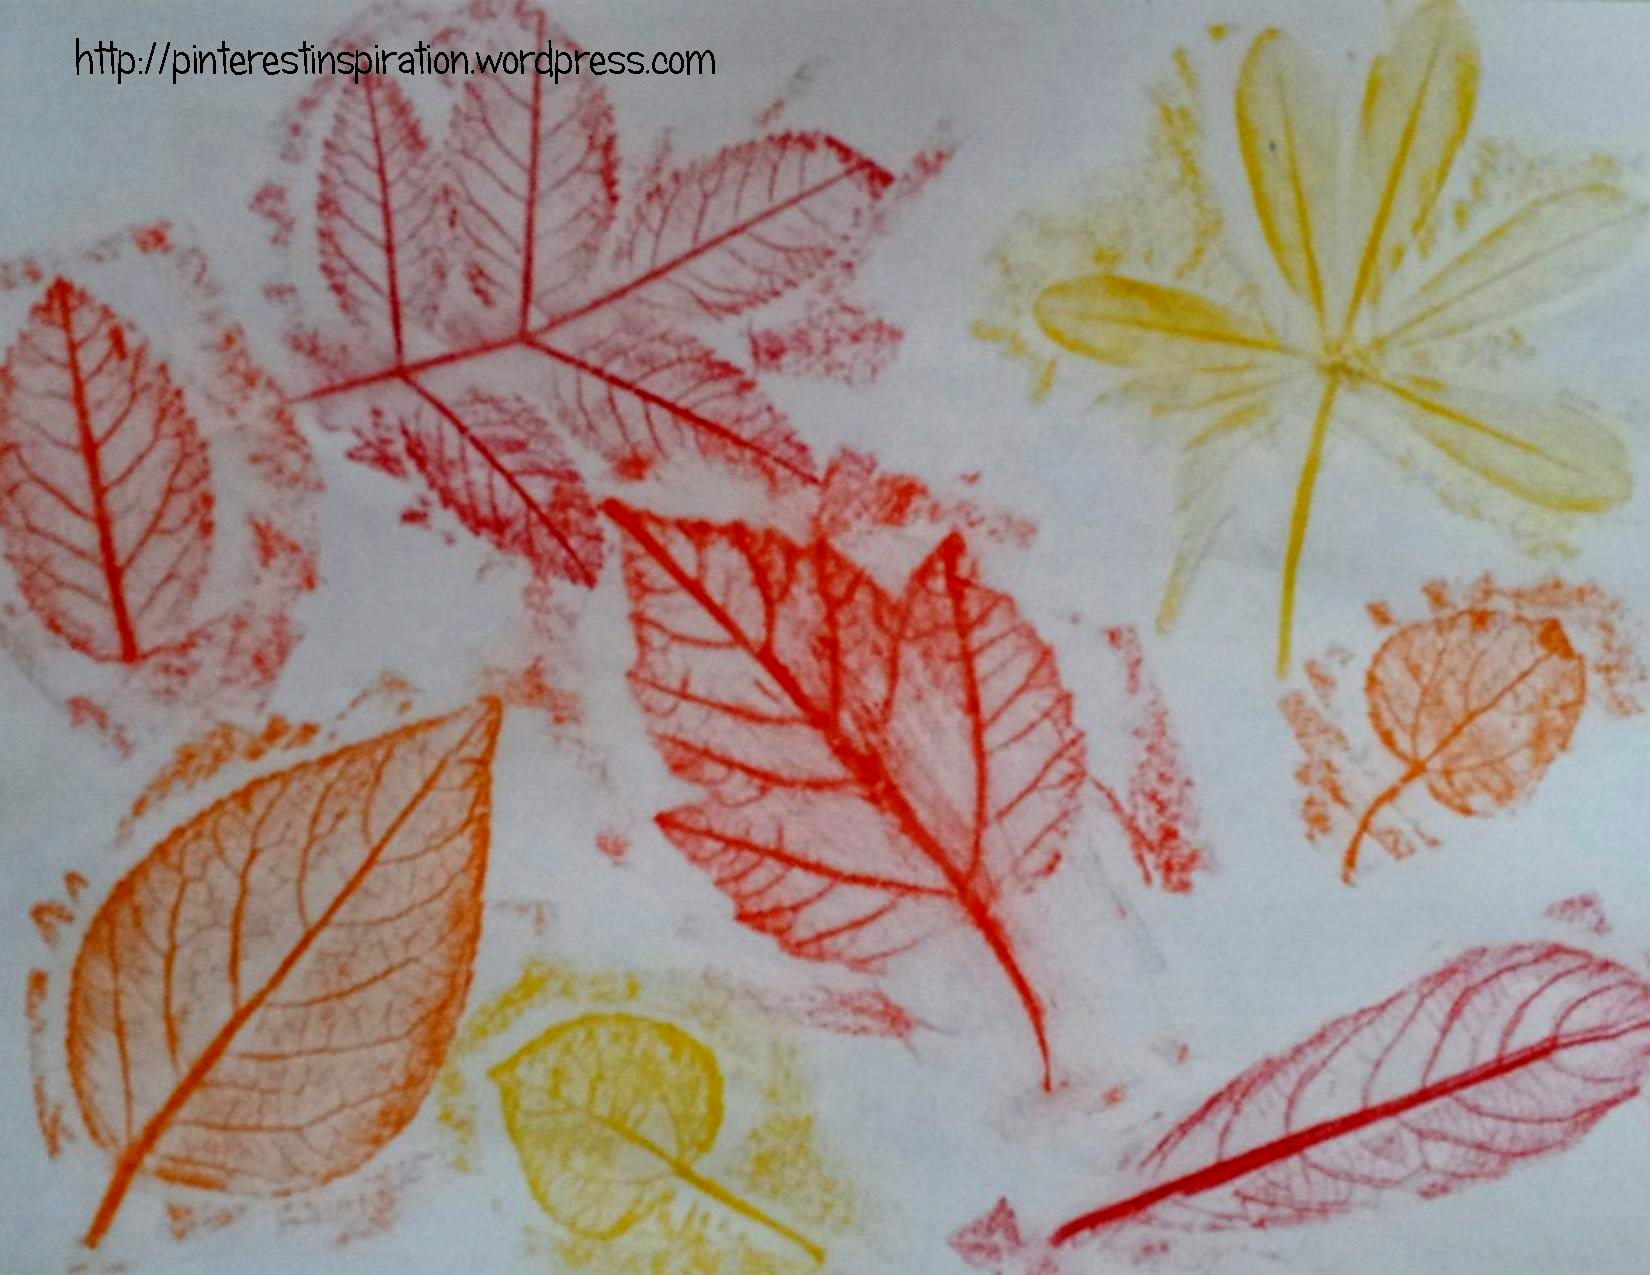 leaf imprints fun art project for all ages pinterest inspiration